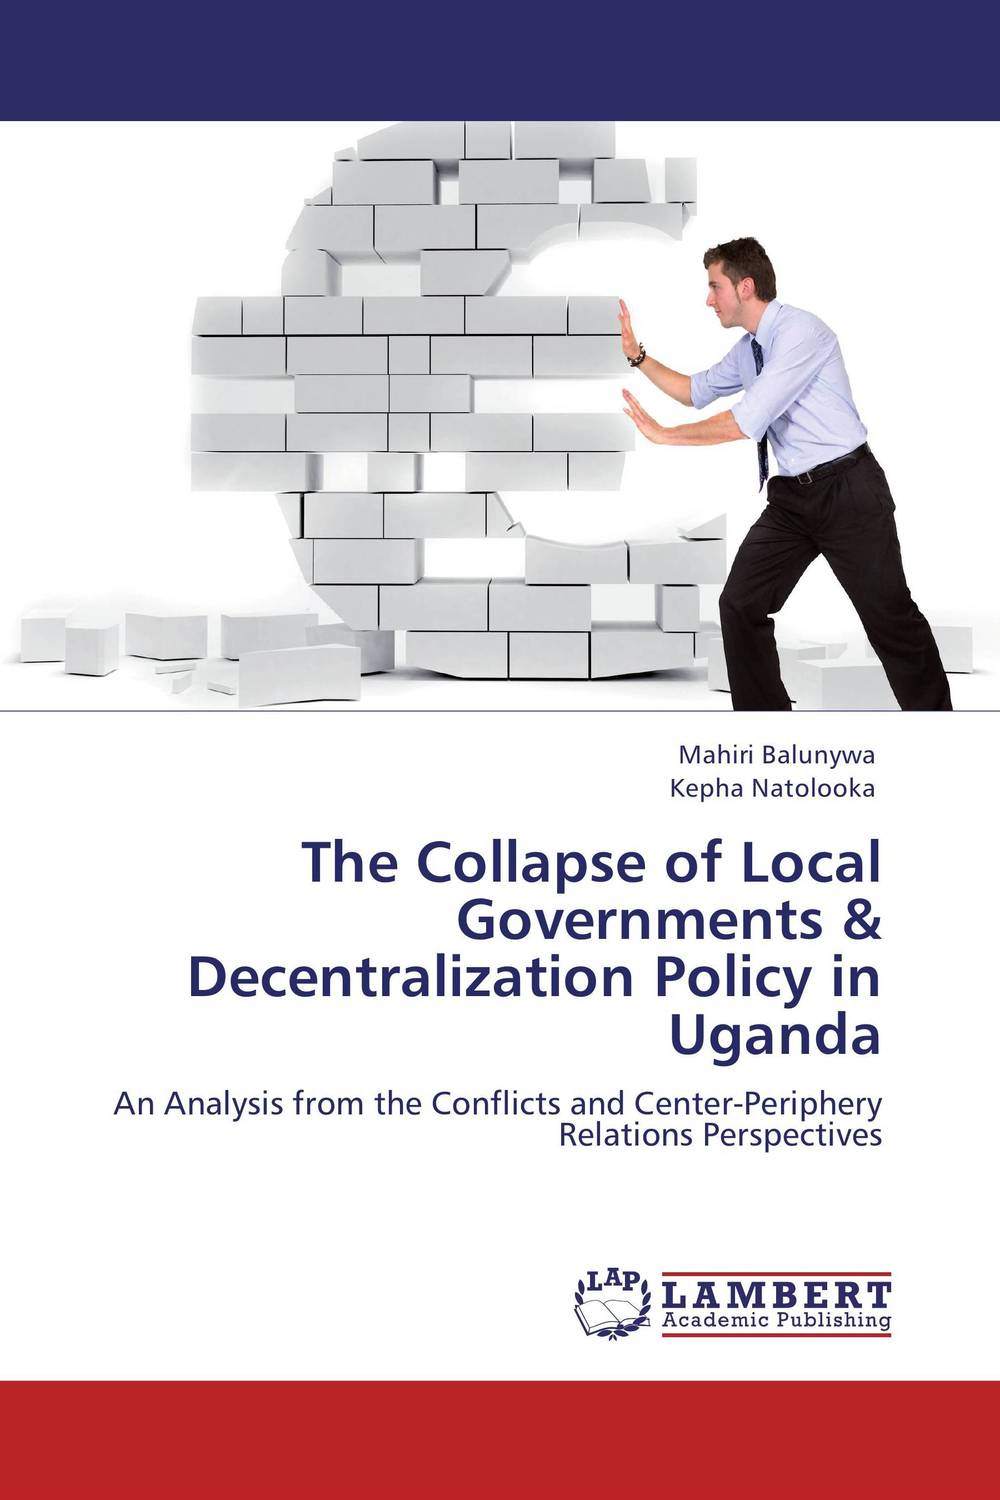 The Collapse of Local Governments & Decentralization Policy in Uganda democracy and dictatorship in uganda a politics of dispensation